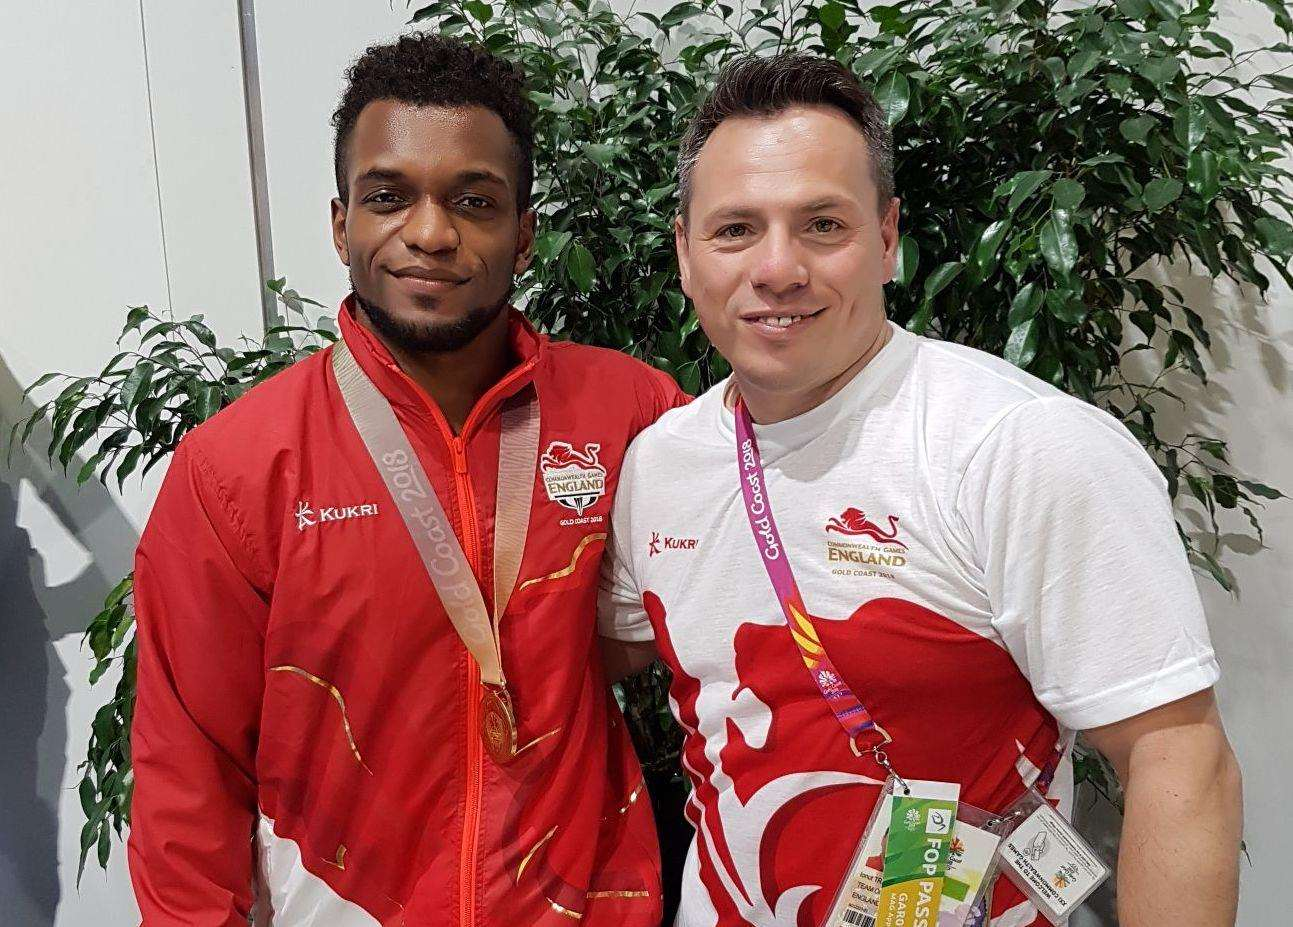 Pegasus gymnast Courtney Tulloch with coach Ionut Trandaburu after rings gold